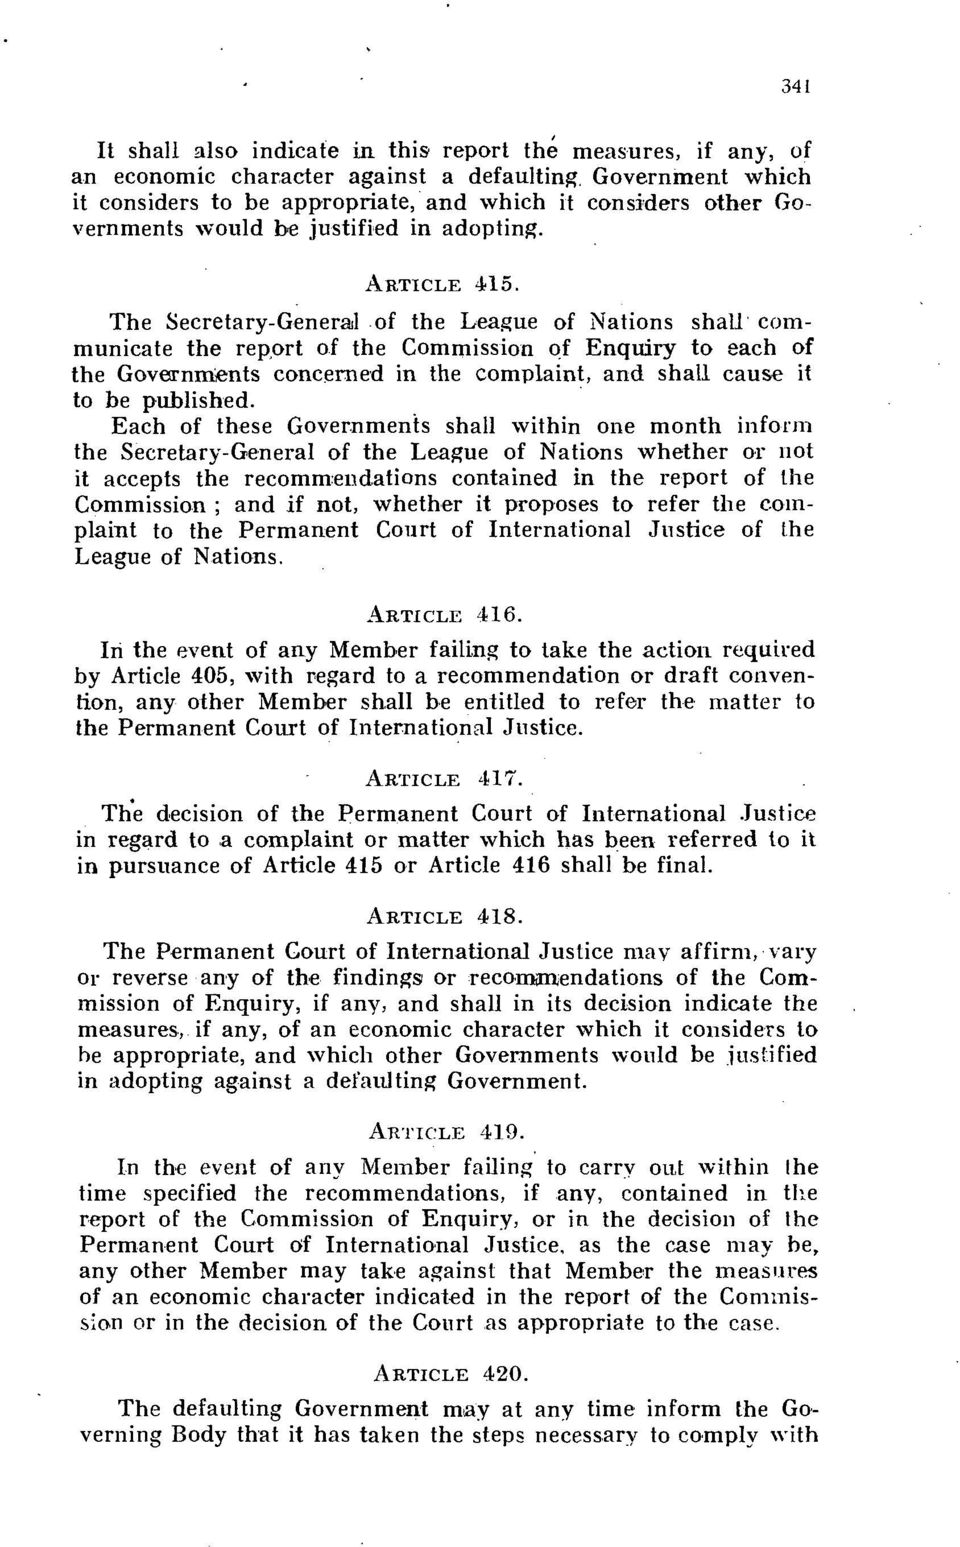 The Secretary-General of the League of Nations shall communicate the report of the Commission of Enquiry to each of the concerned in the complaint, and shall cause it to be published.